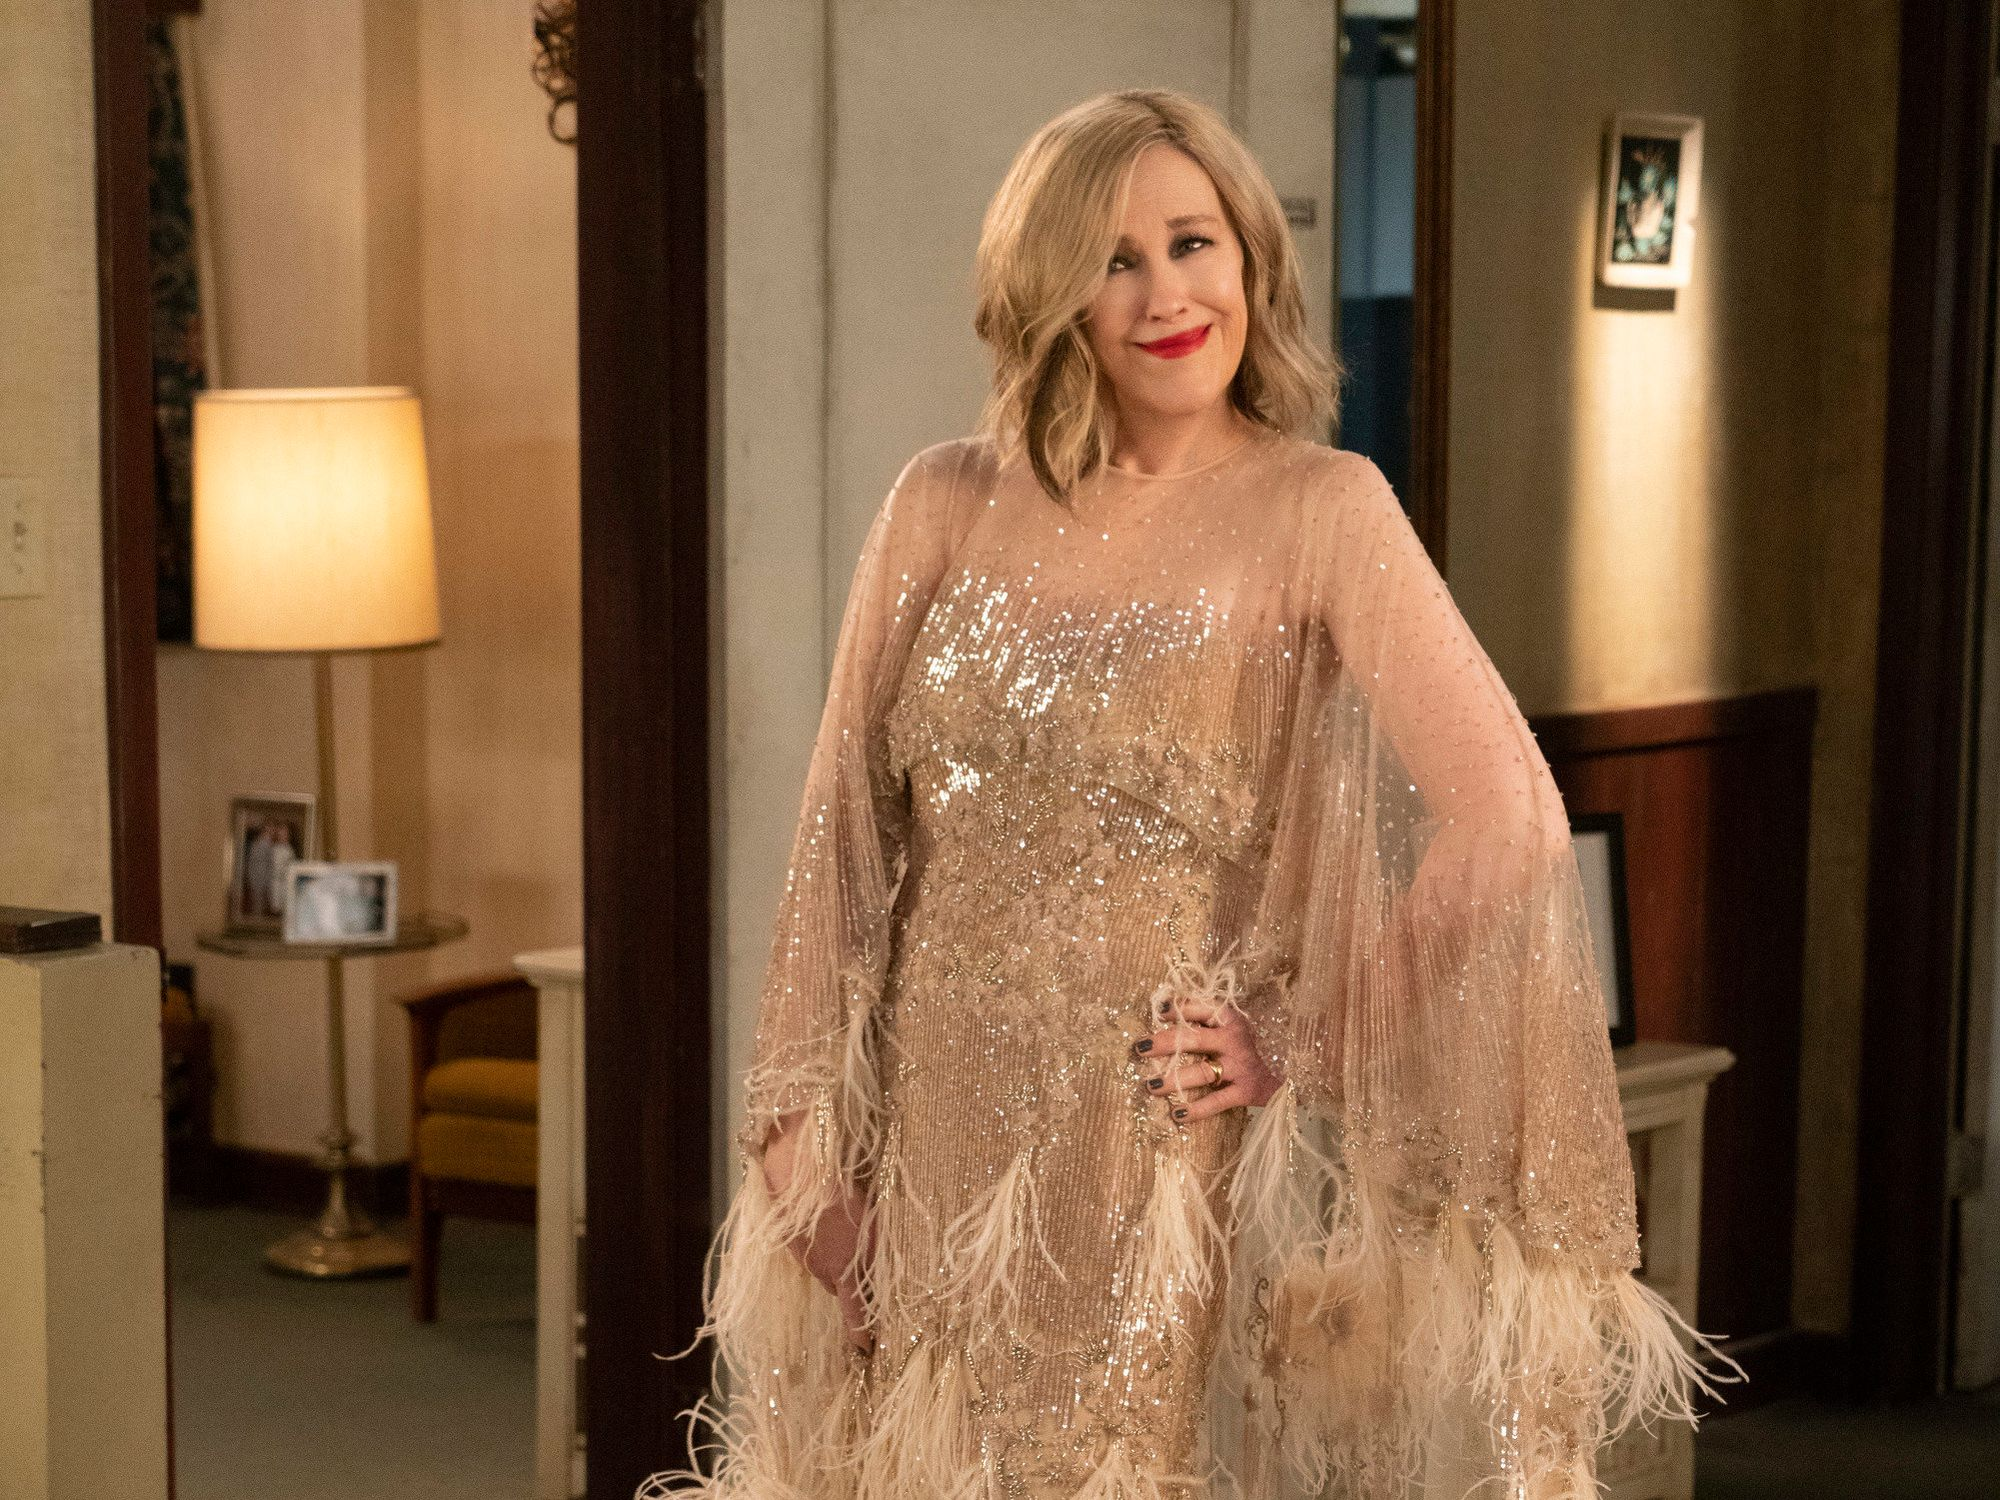 Moira models the glamorous sequined gown she bought for her movie premiere